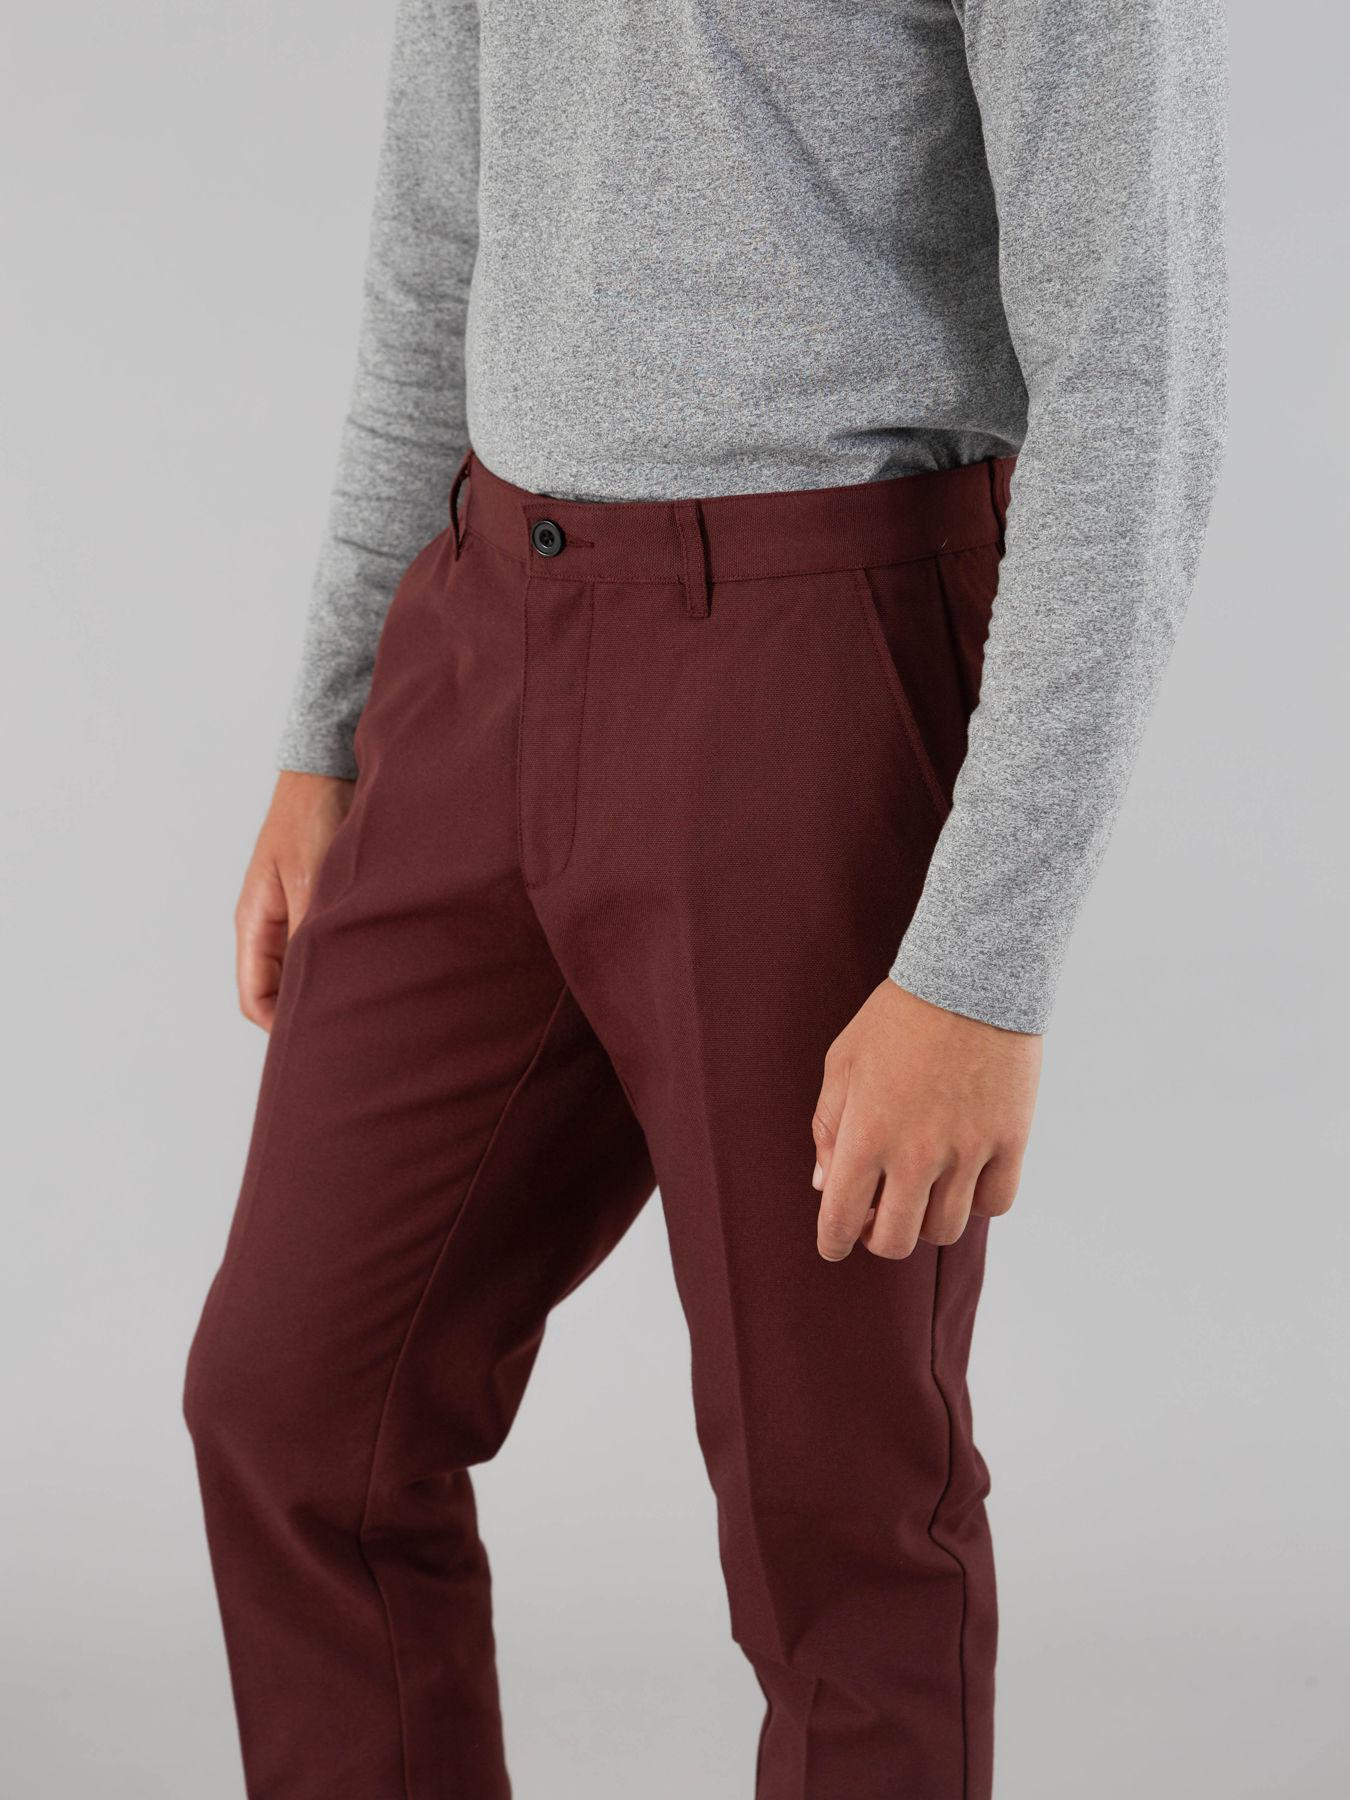 Farah Synthetic The Elm Hopsack Trousers in Red for Men